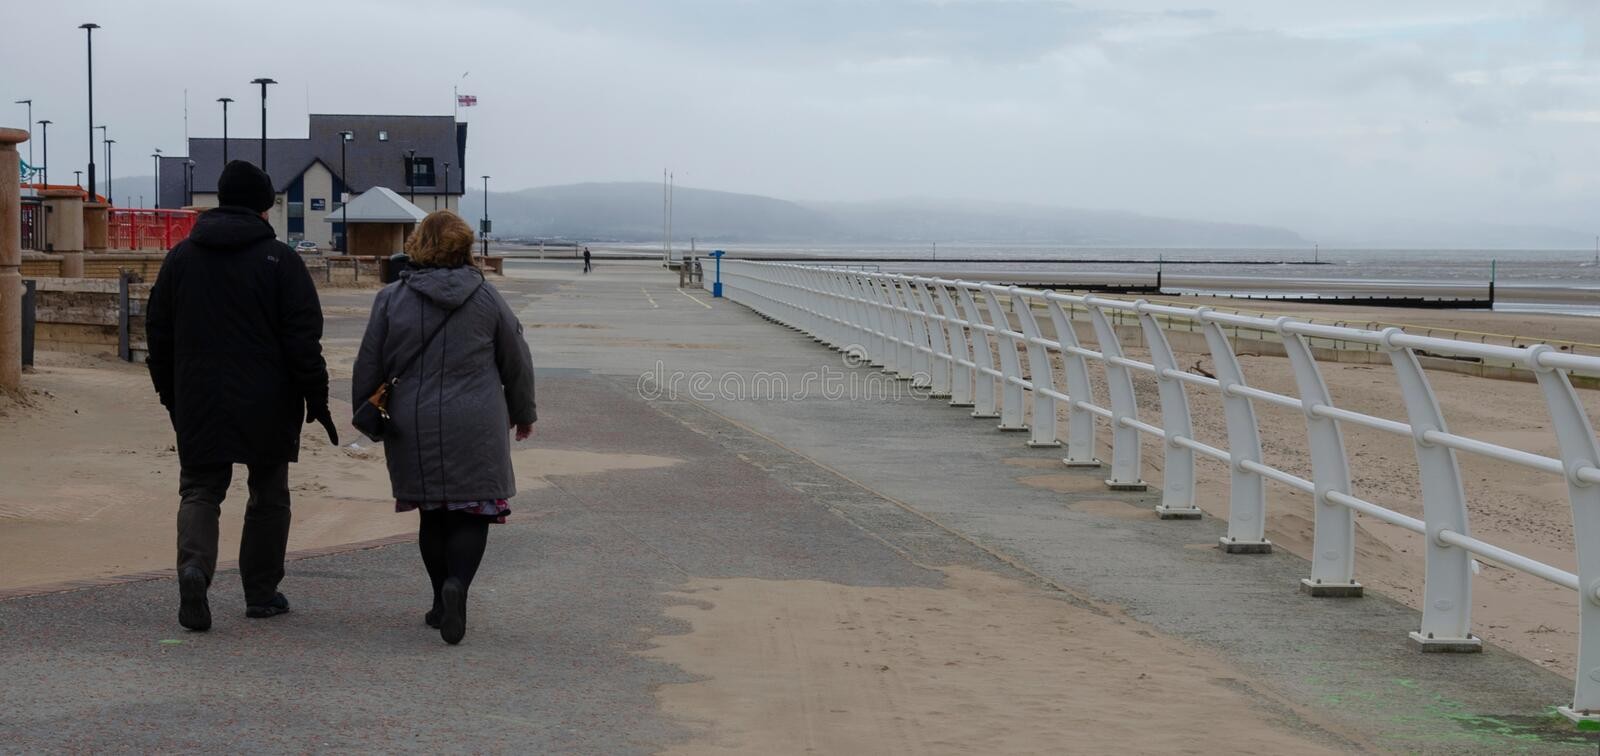 A winters day walk. Rhyl, UK: Jan 7, 2020: A middle aged couple take a walk on the promenade at Rhyl, North Wales on a grey winters day royalty free stock image